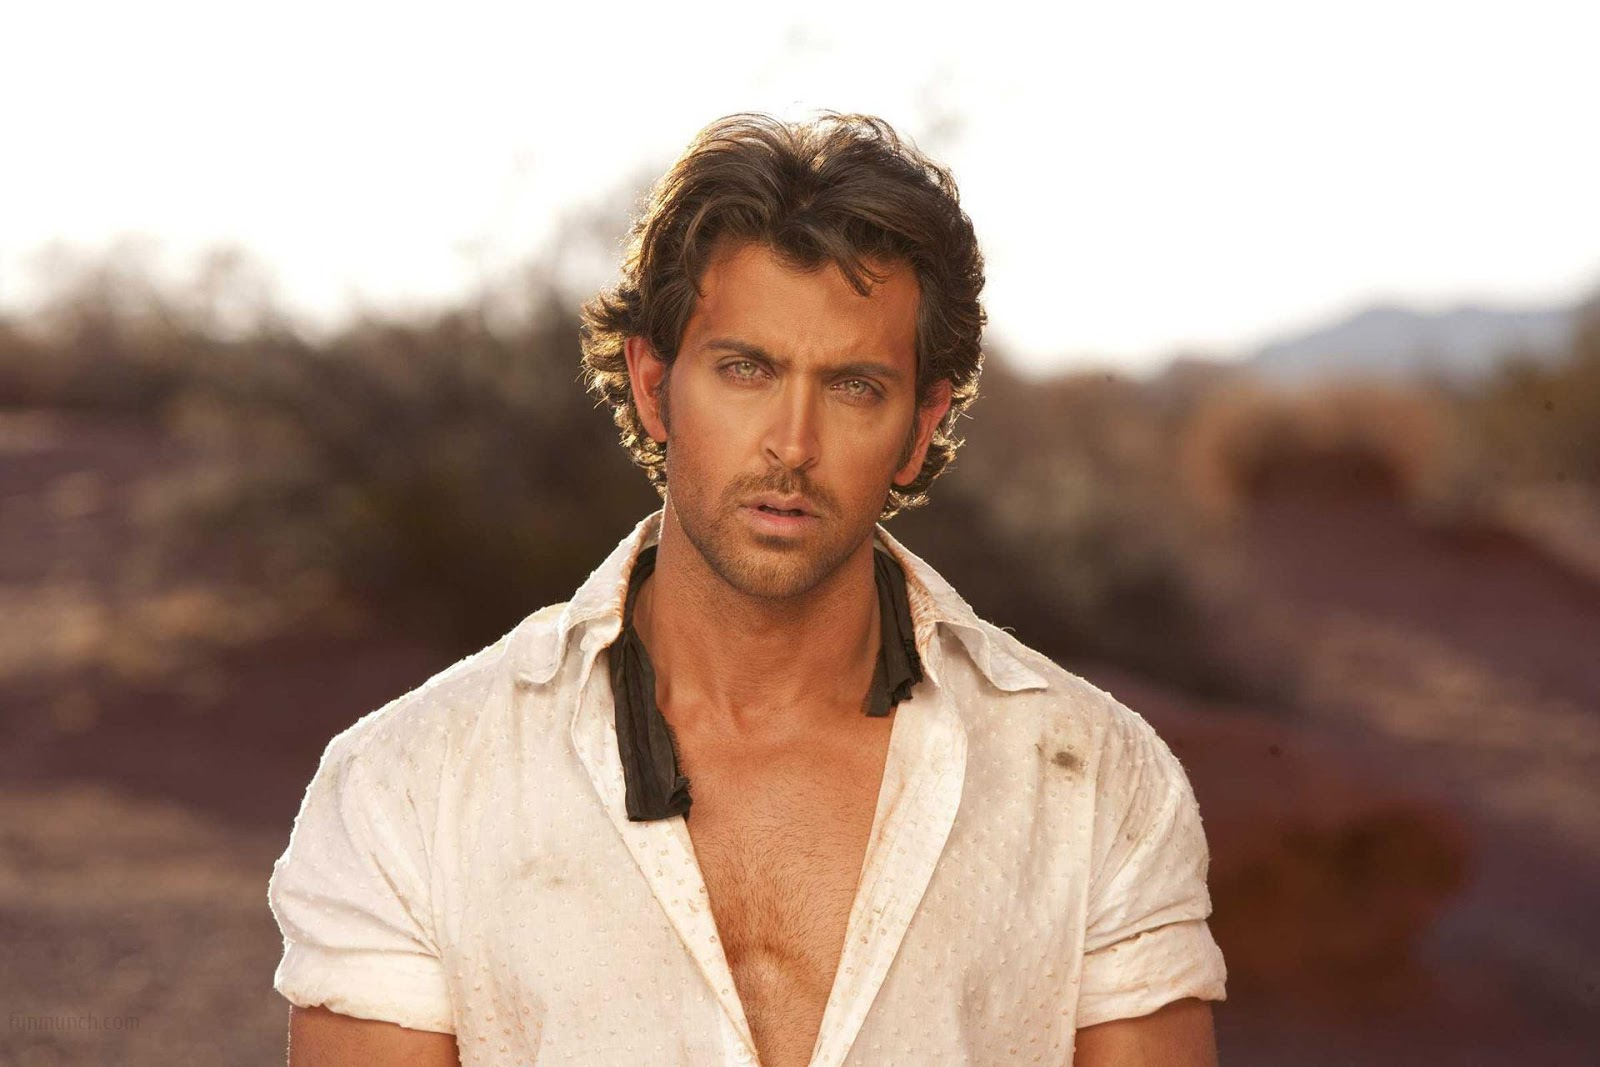 hd wallpaper: hrithik roshan body hd wallpaper